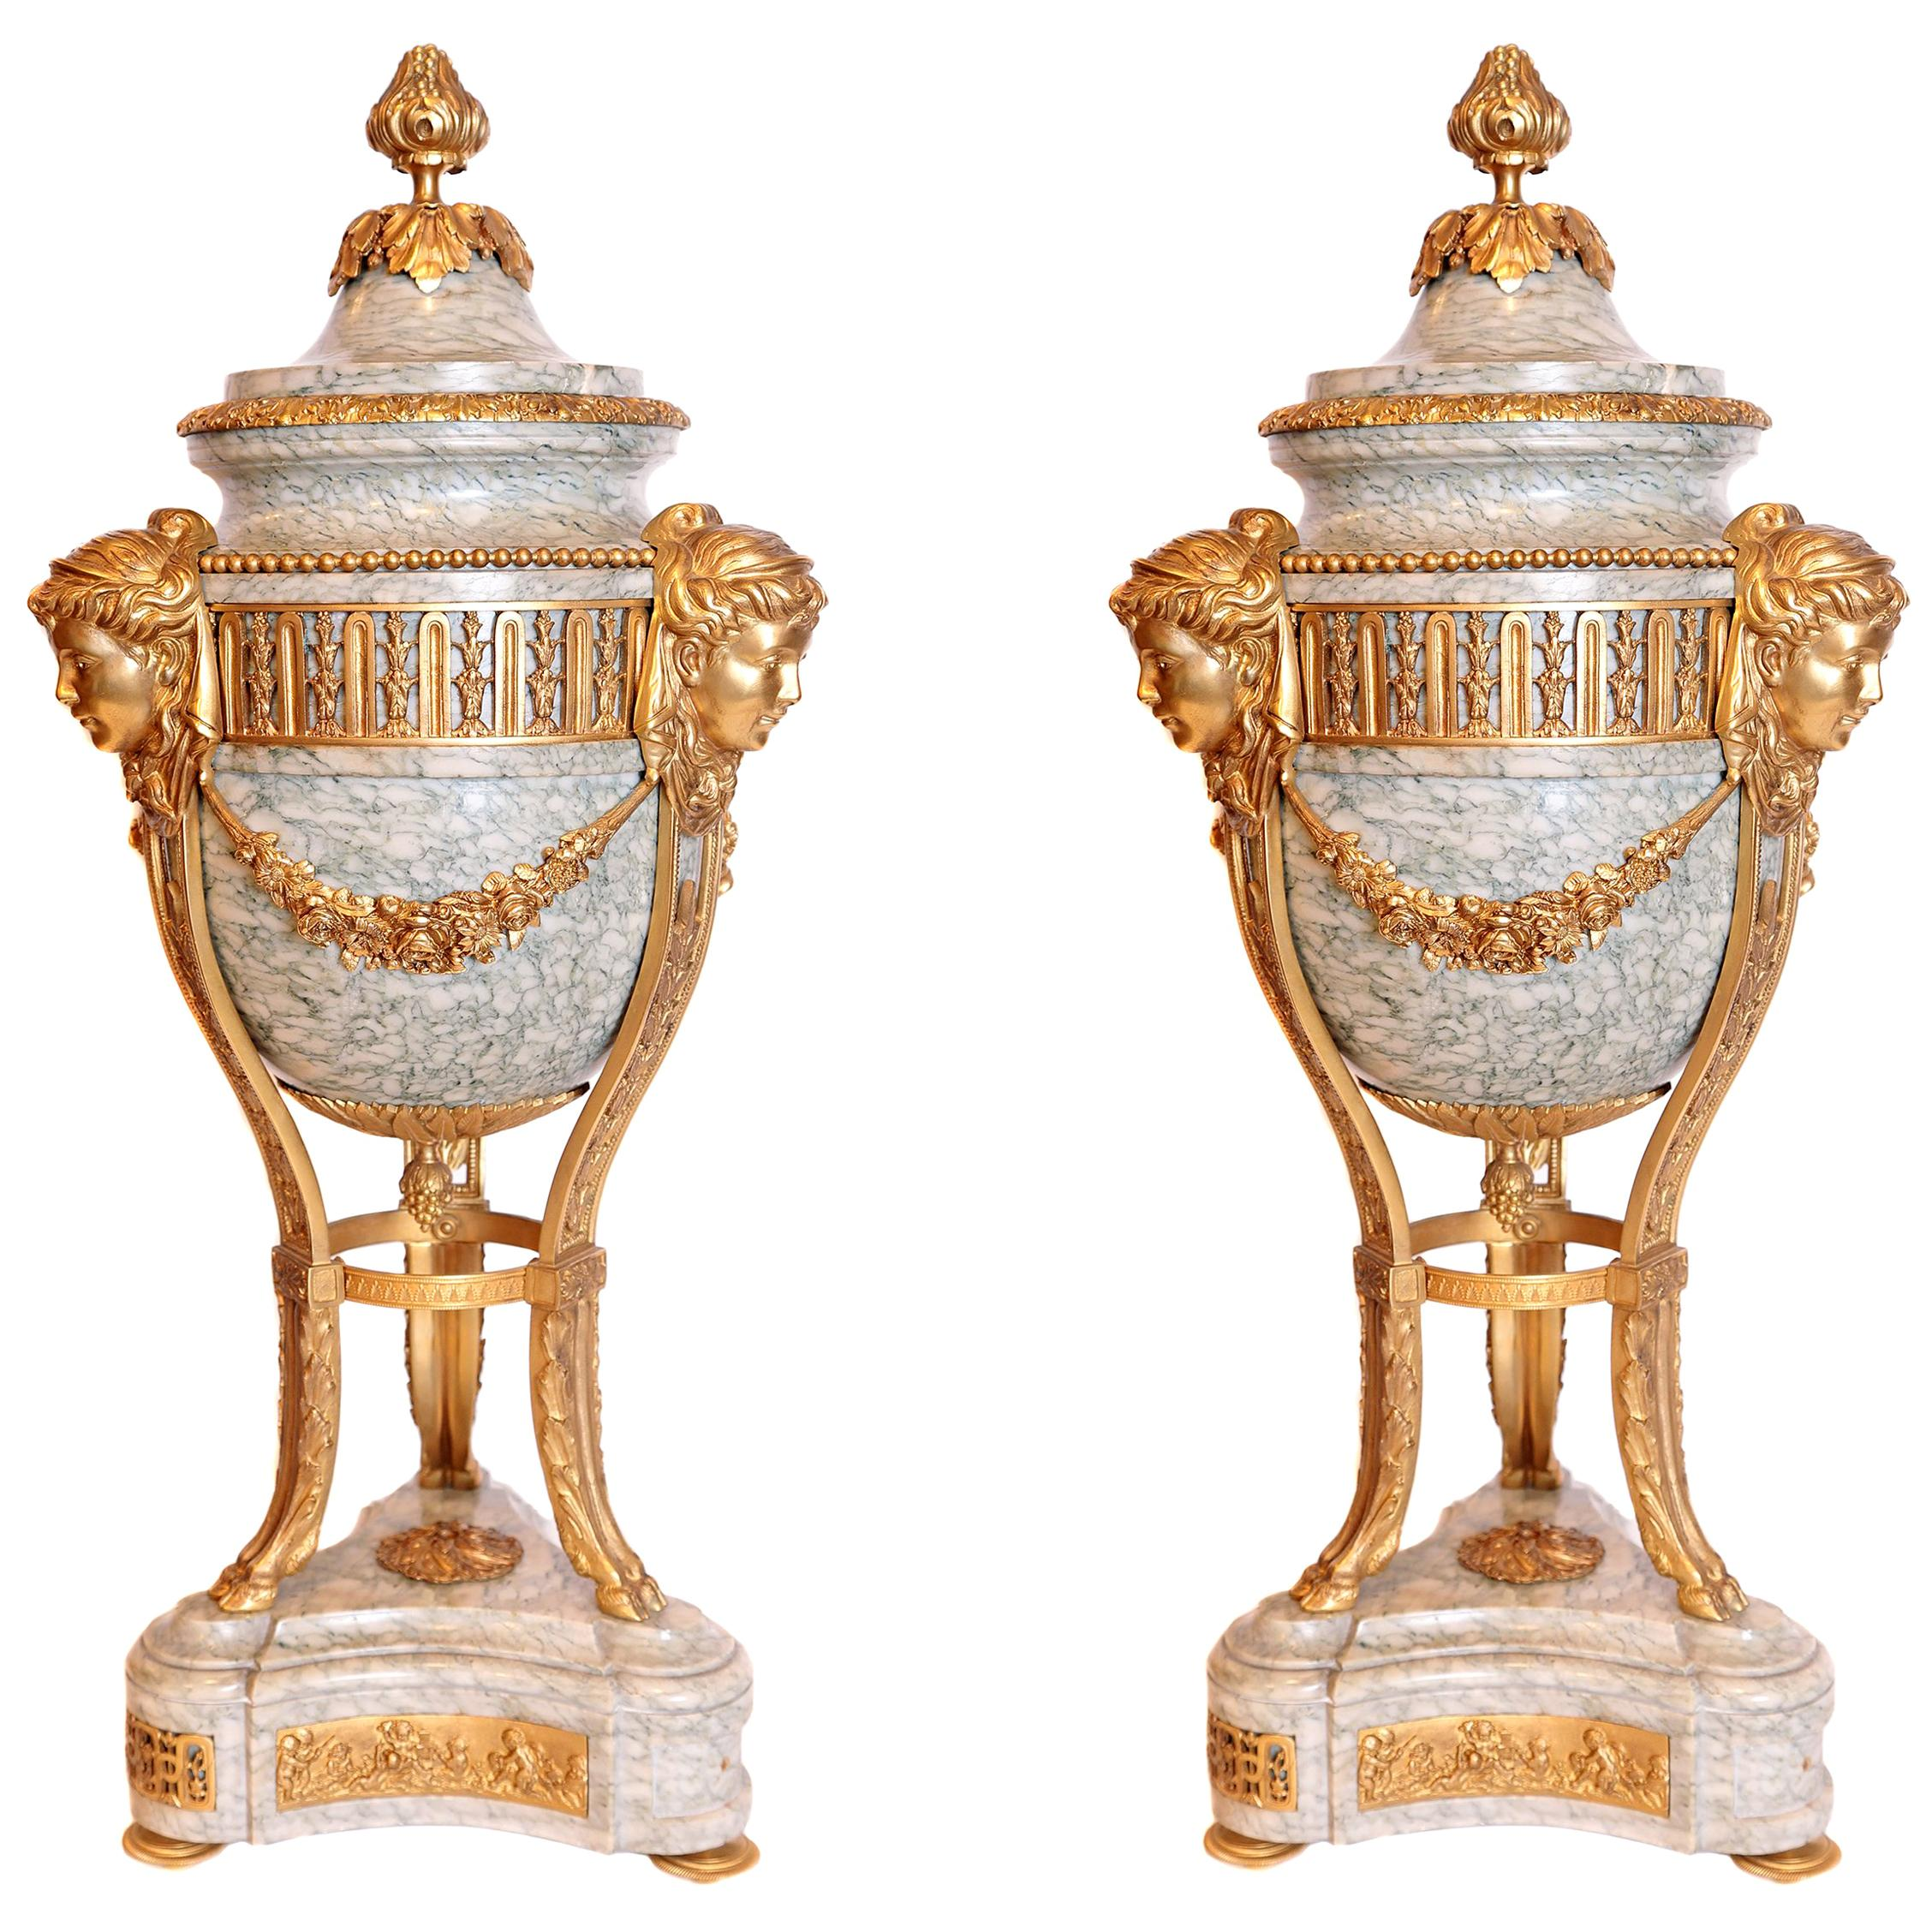 Pair of French 19th Century Louis XV Gilt Bronze and Marble Lidded Urns